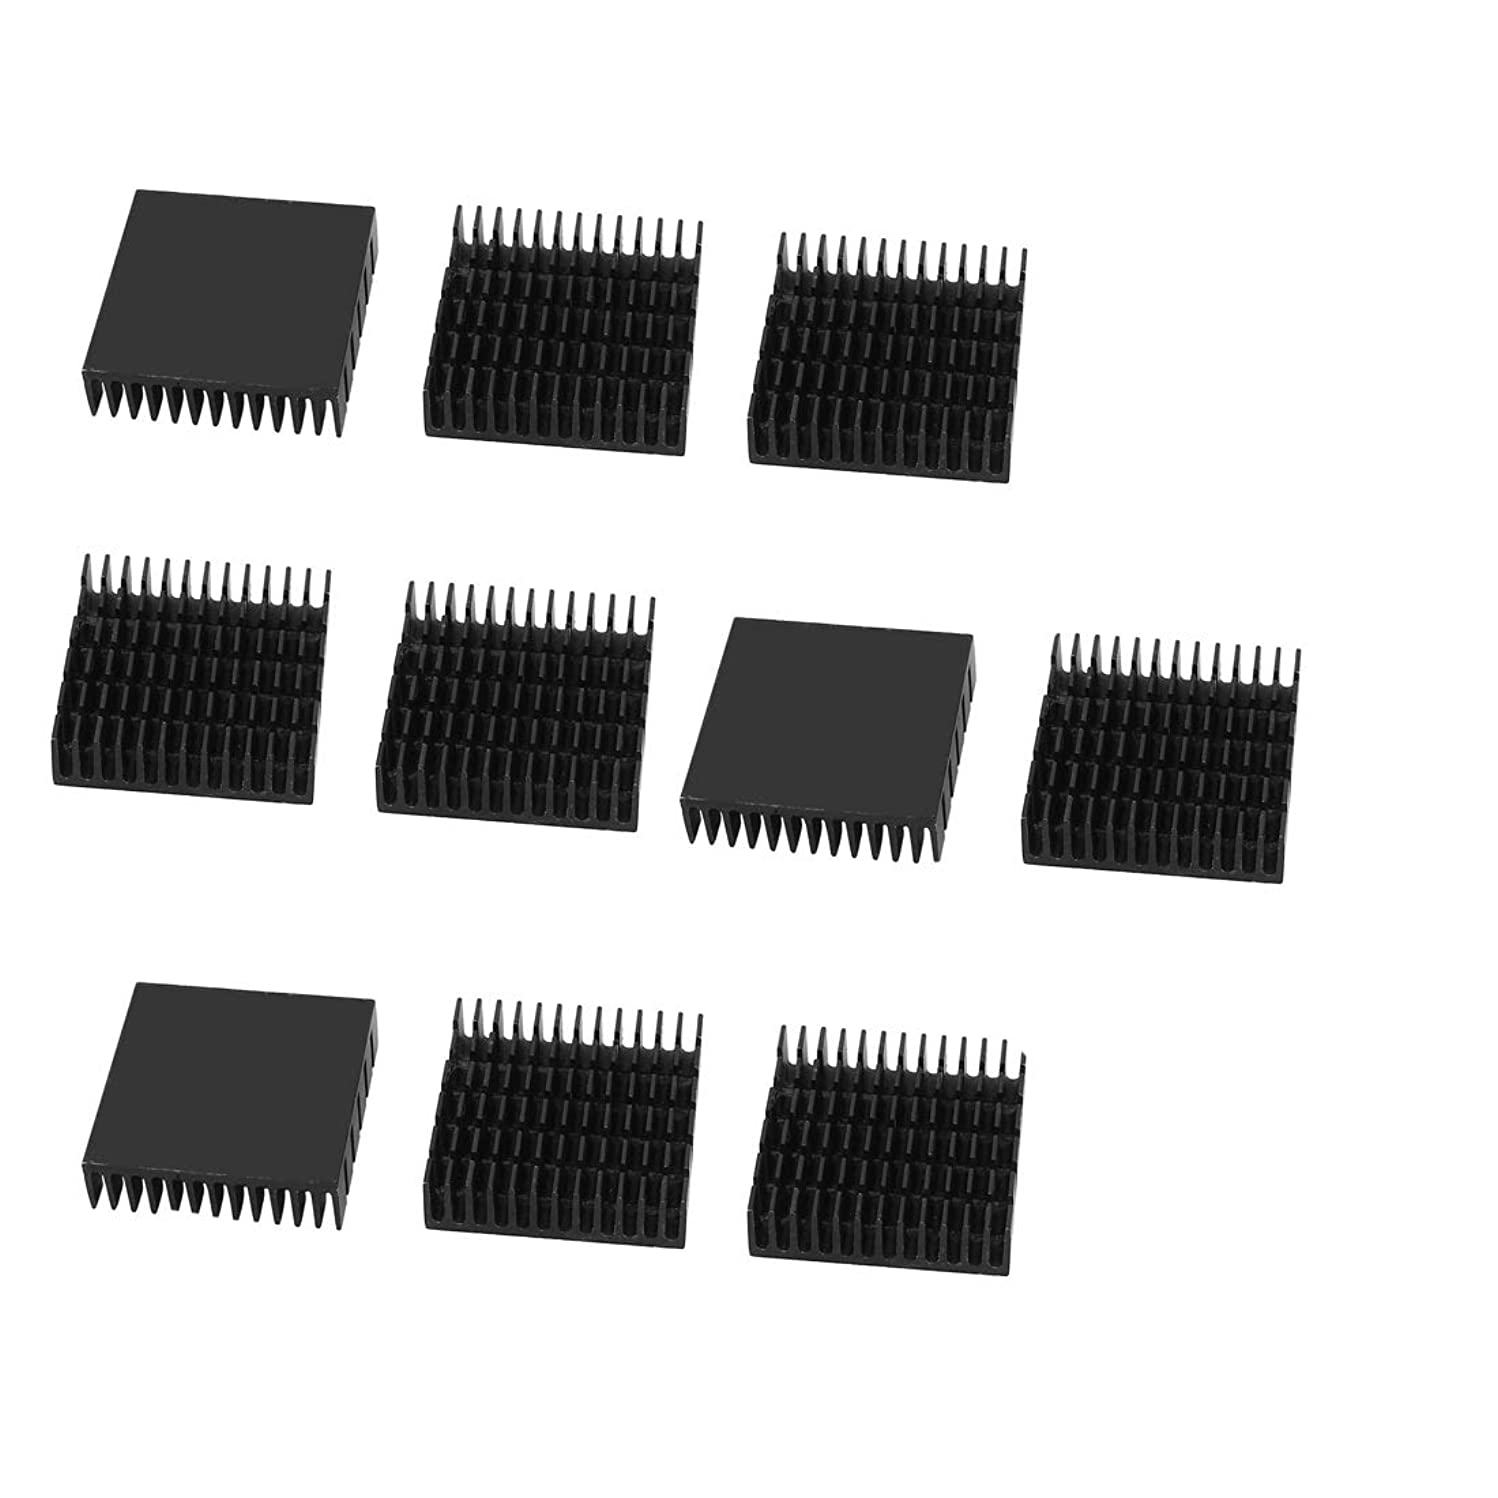 HGElectronic Cooling Module 10 Pcs 40mm x 40mm x 11mm Aluminium Heat Sink Heatsink Heat Dissipation Cooler Fin 10Pcs